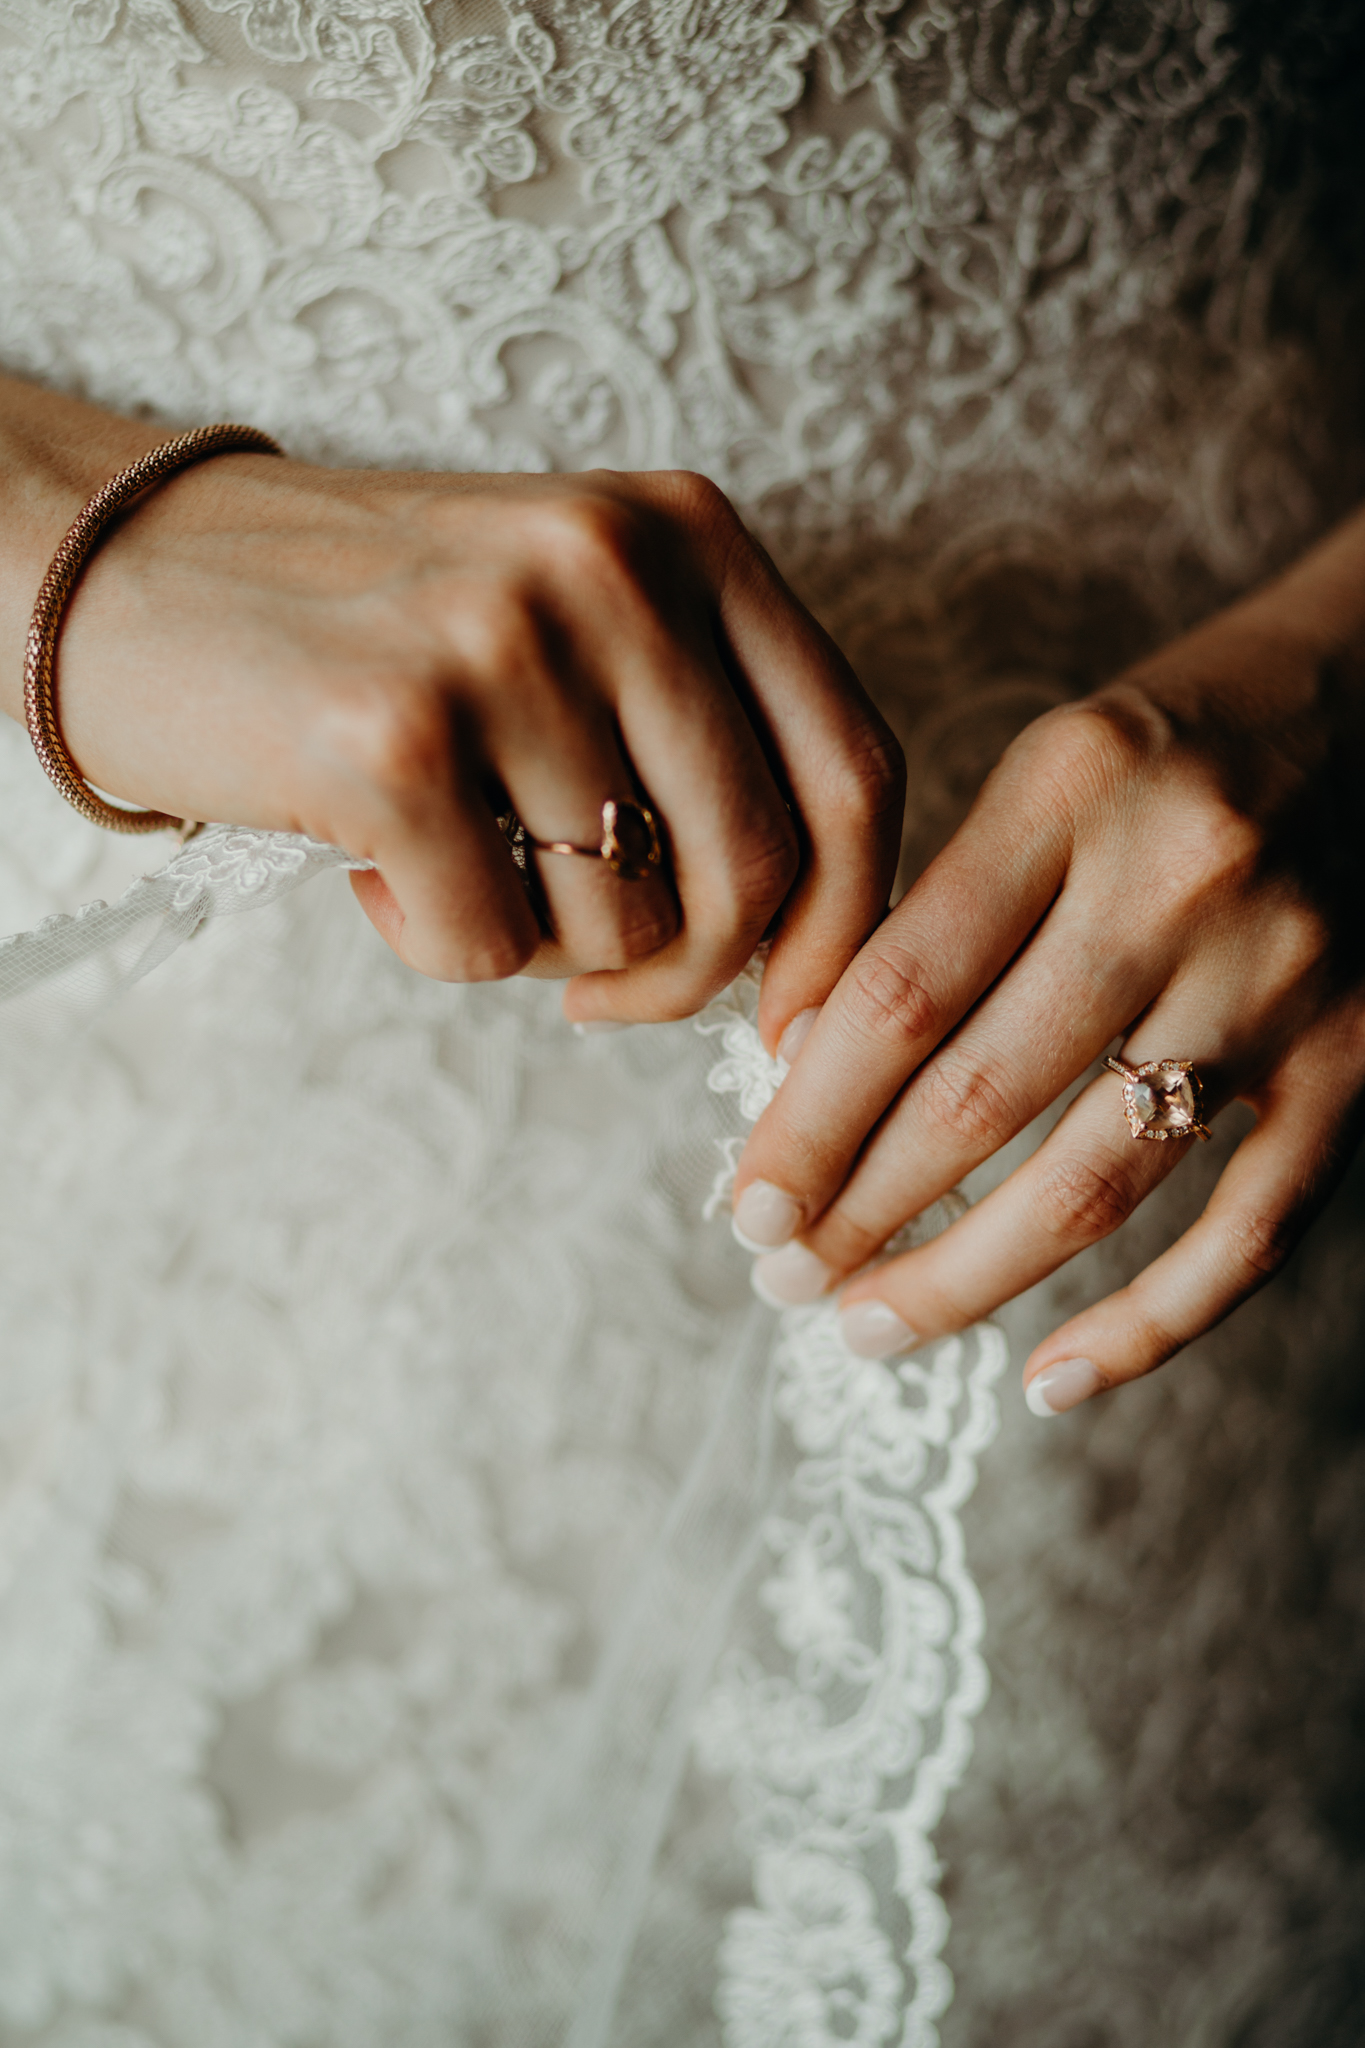 Close up of bride's hands fixing veil